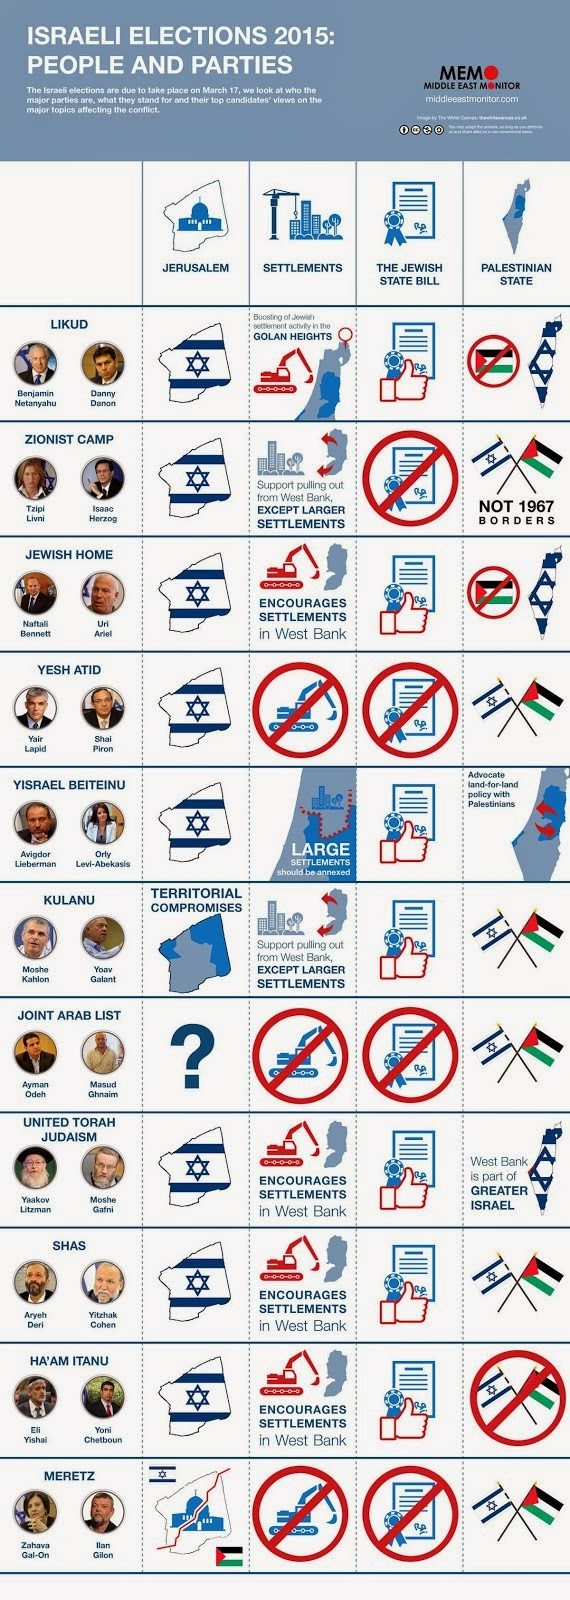 This is a merely a brief list but you can check out  this amazing interactive   infographic    for more information (Courtesy of Mideast Monitor). Just like this infographic, Israeli politics is long-winded full of lots of little details.